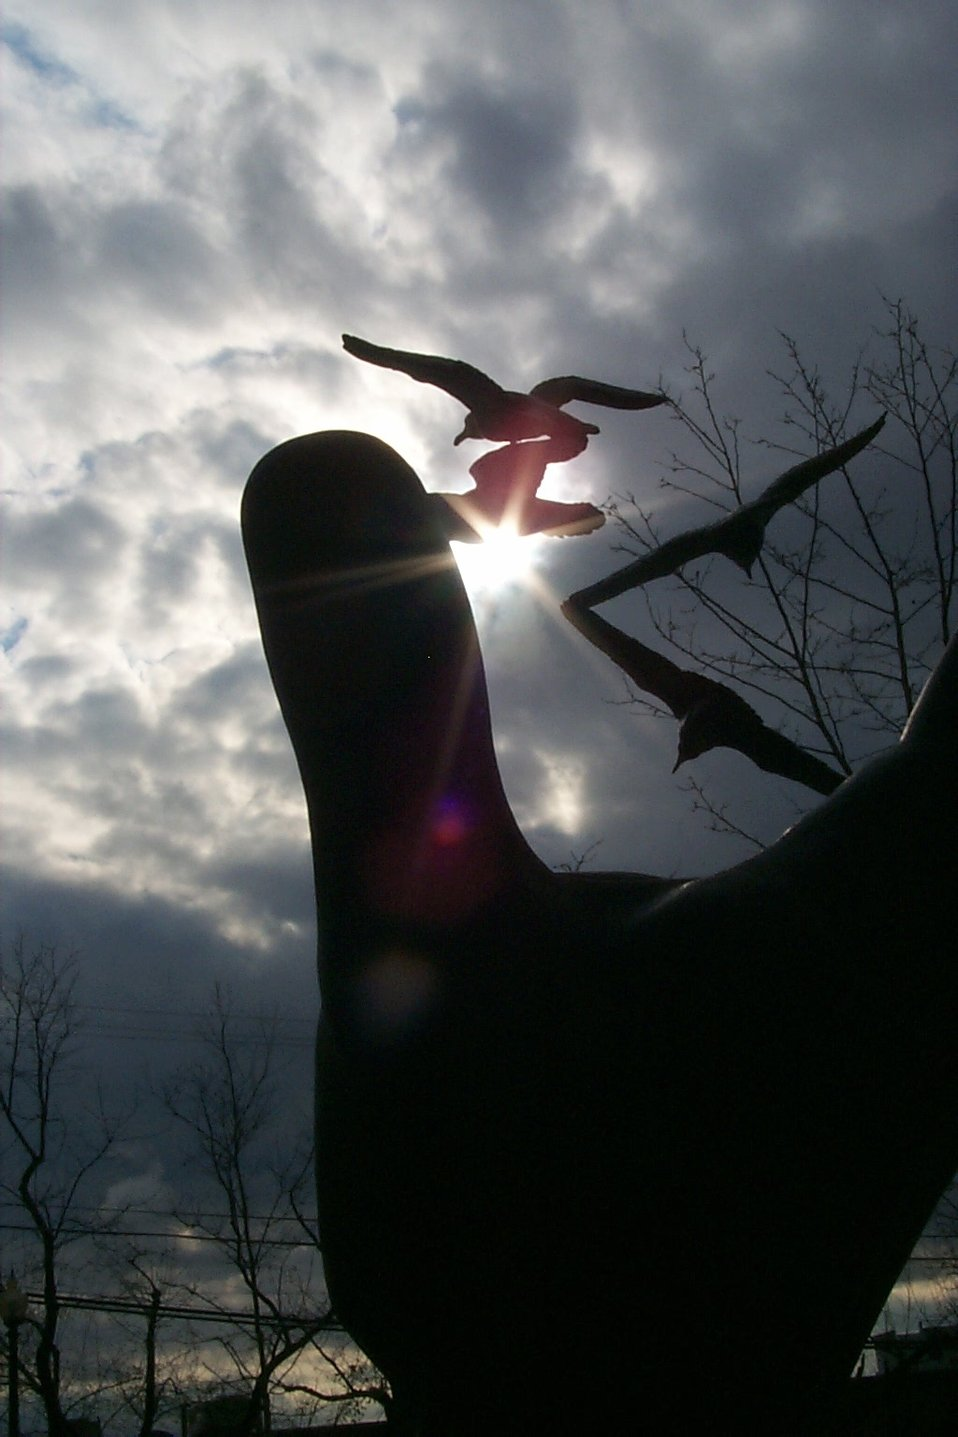 Clouds and sun silhouette the statue symbolizing NOAA's stewardship of the environment at the entrance to a NOAA headquarters building in Silver Spring.  This statue was titled 'Hand of Noah' by its sculptor, Raymond Kaskey in 1991.